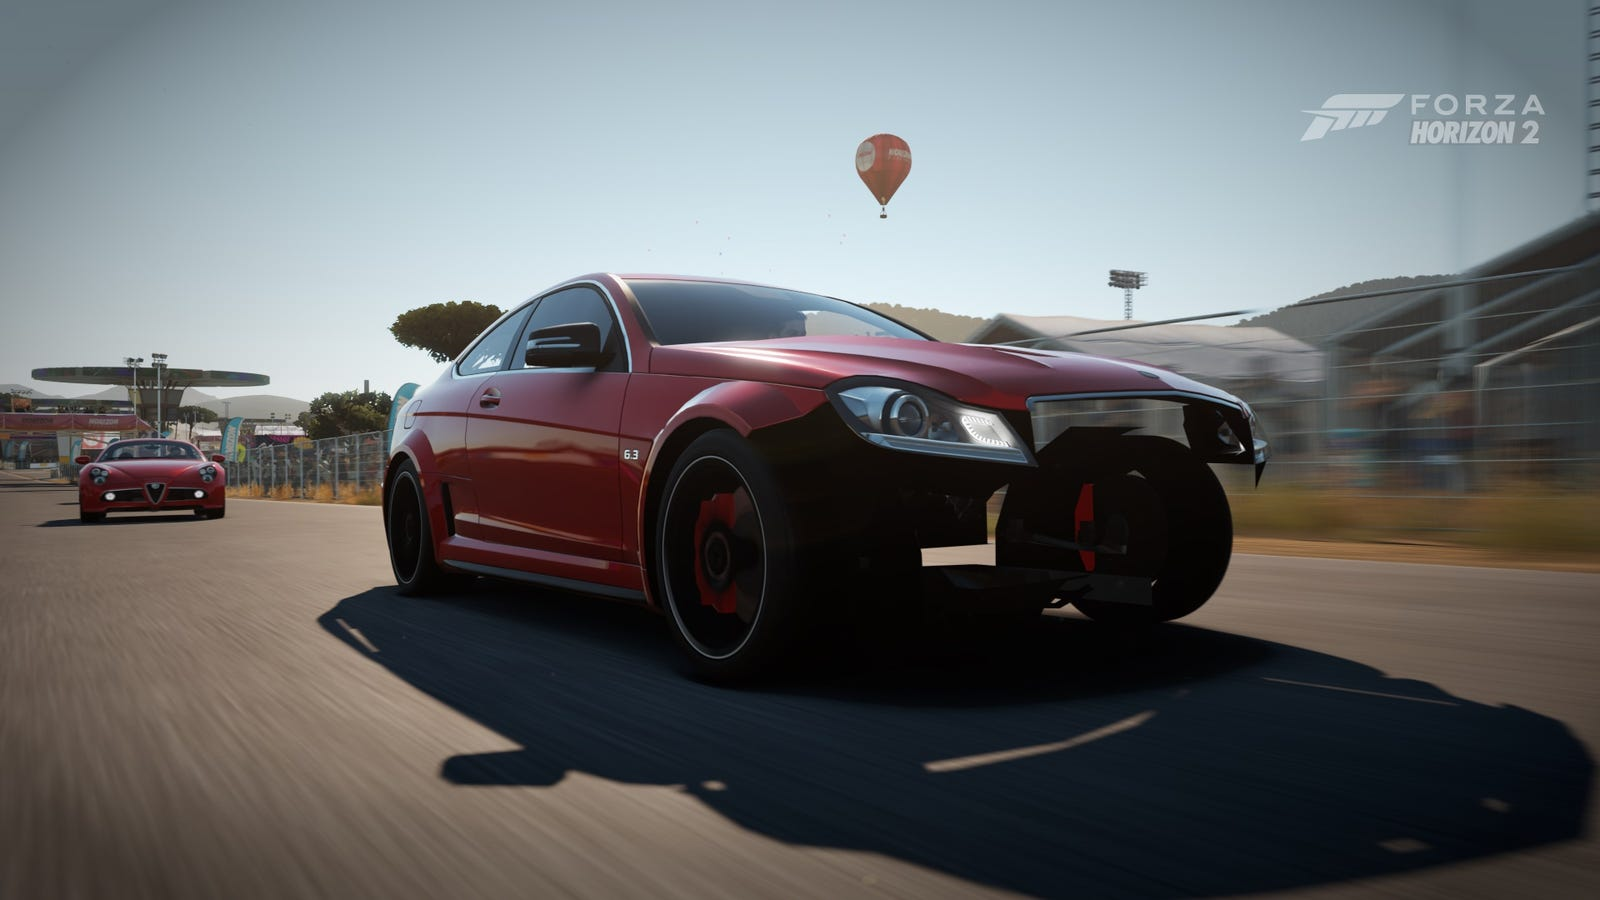 Missing Cars In Forza Horizon